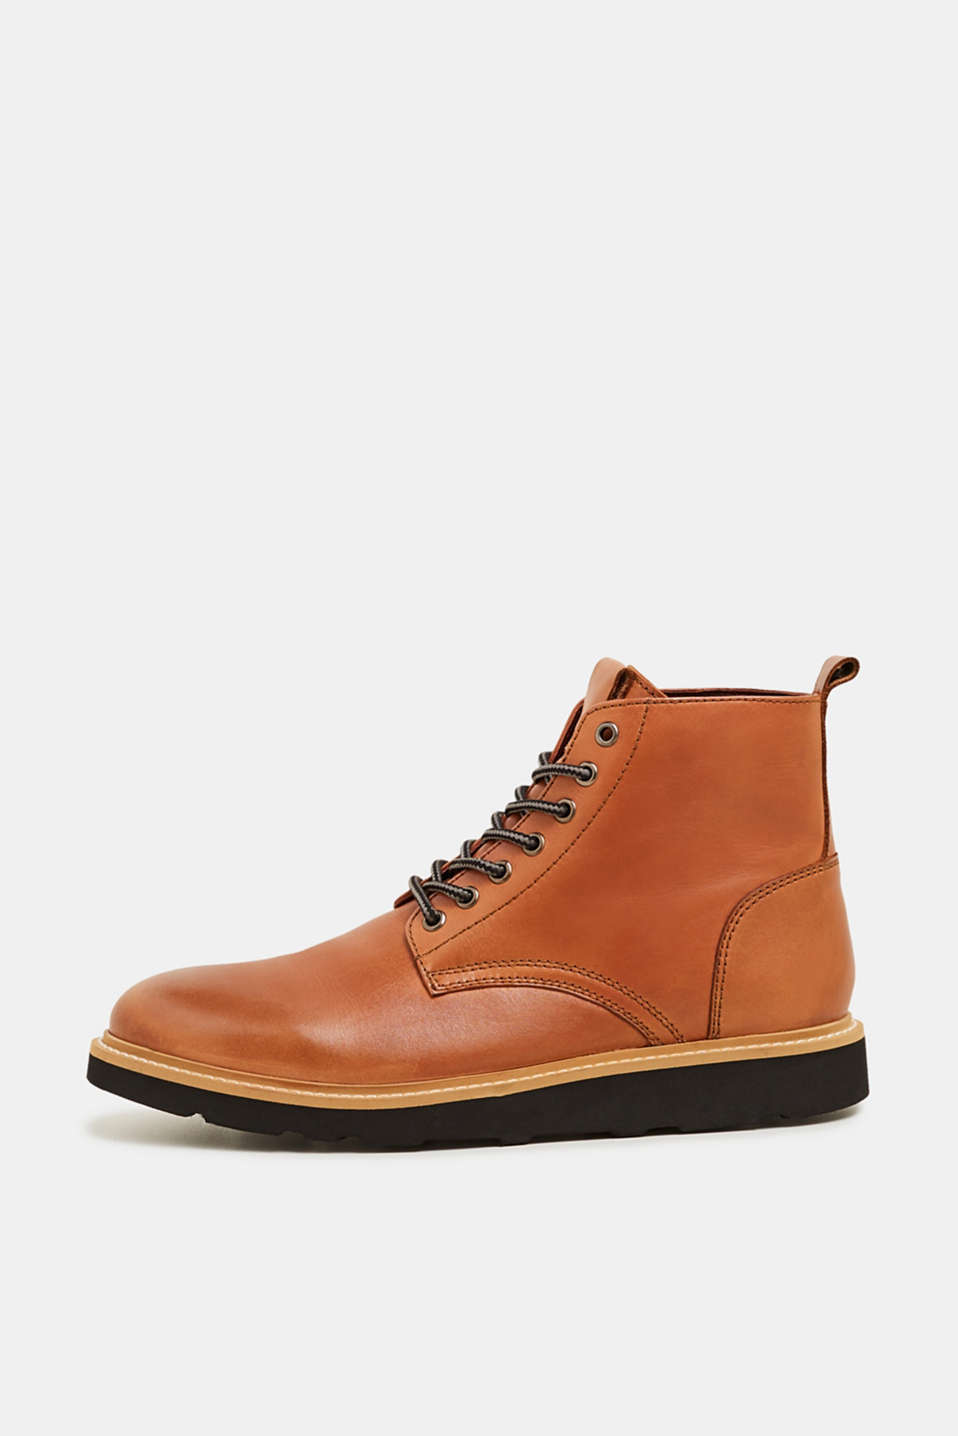 Esprit - Leather desert boots